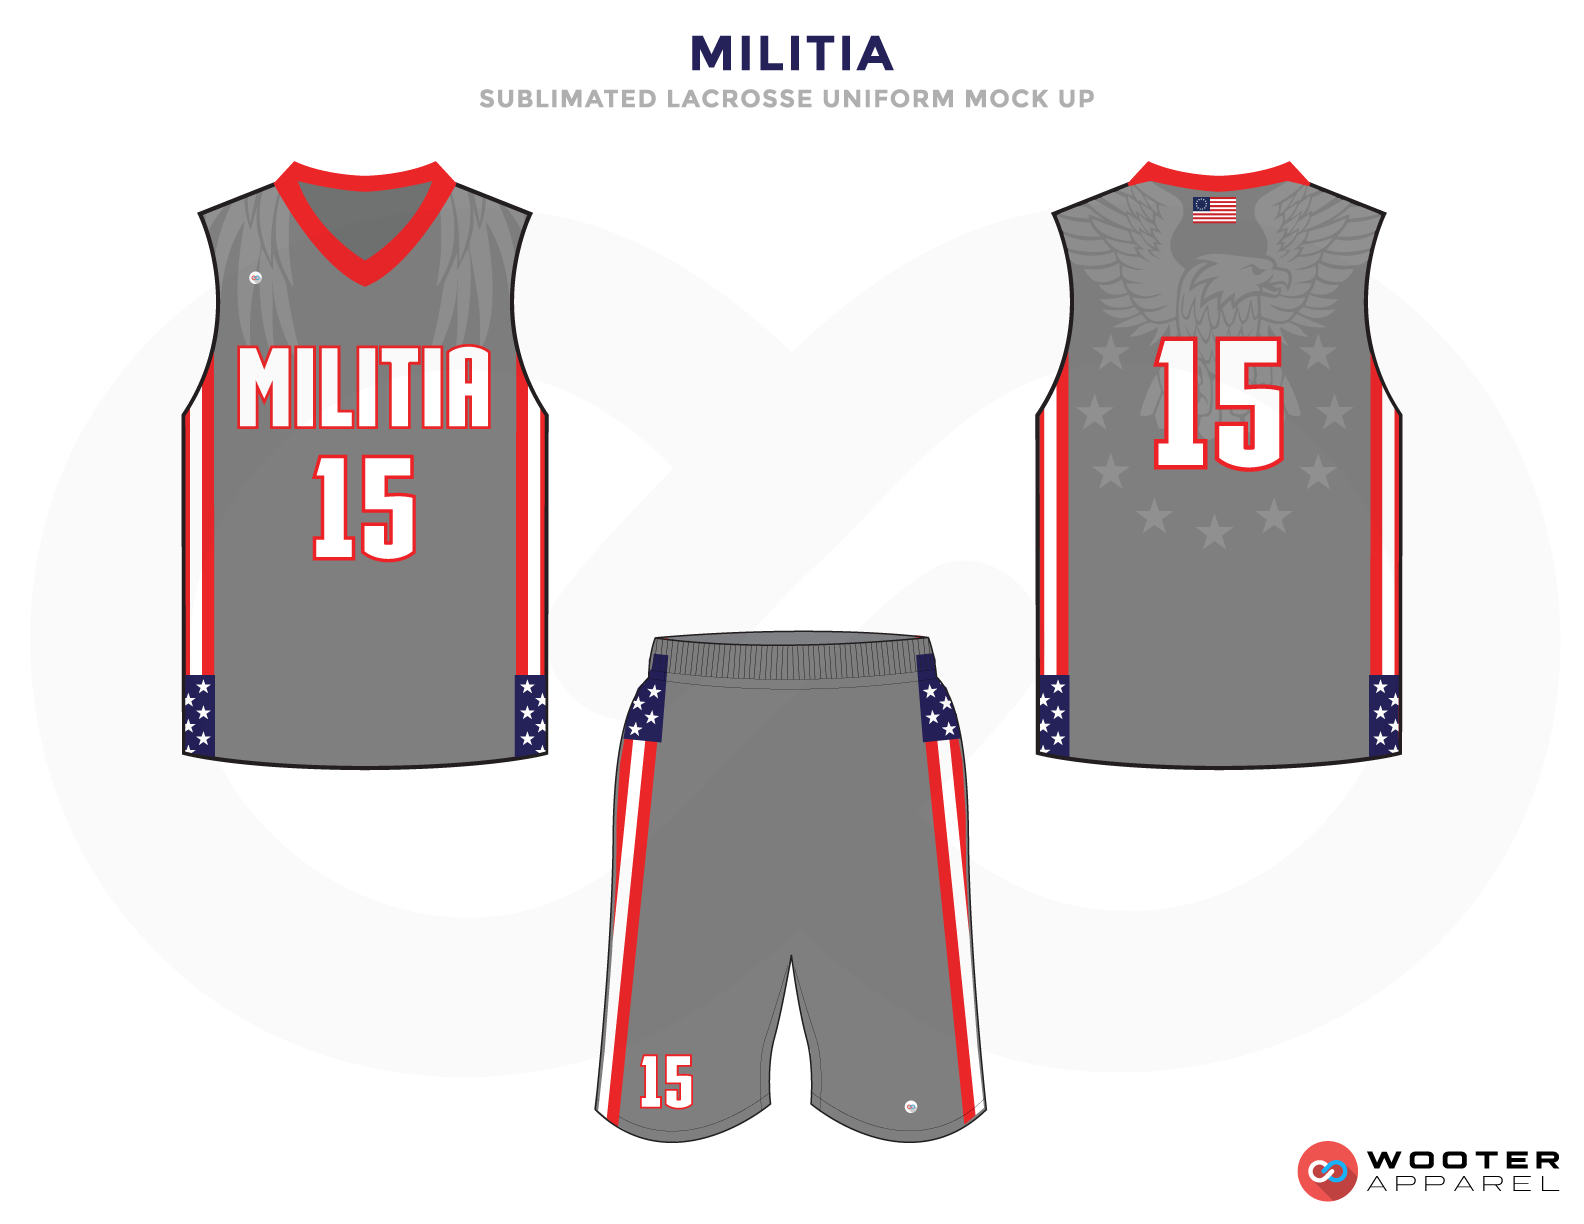 Militia Blue Red Grey and White Lacrosse Uniforms, Reversible Pinnies, Jerseys, Shorts